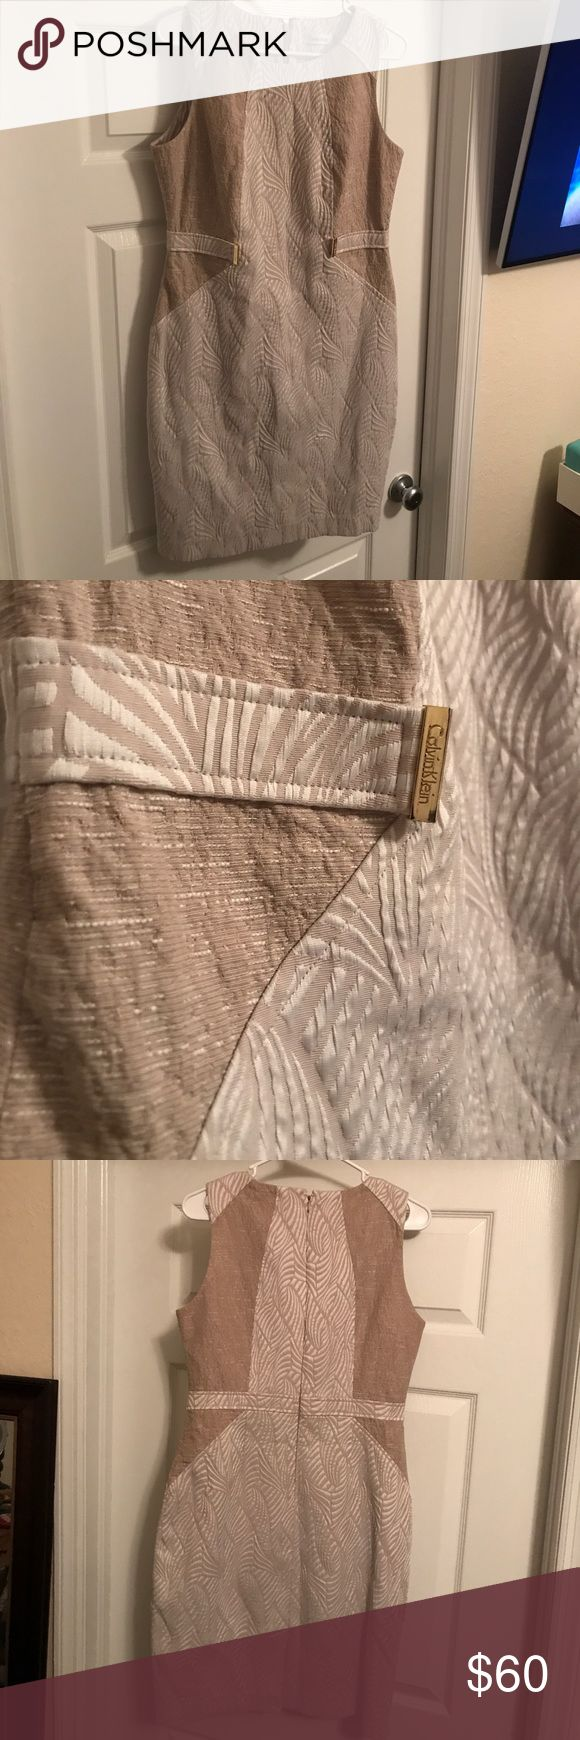 Calvin Klein nude patterned dress Brand new!!  Beautiful nude Calvin Klein dress. Gold belted detail. Gift from my mom, not exactly my style. Has original tags. Calvin Klein Dresses Midi